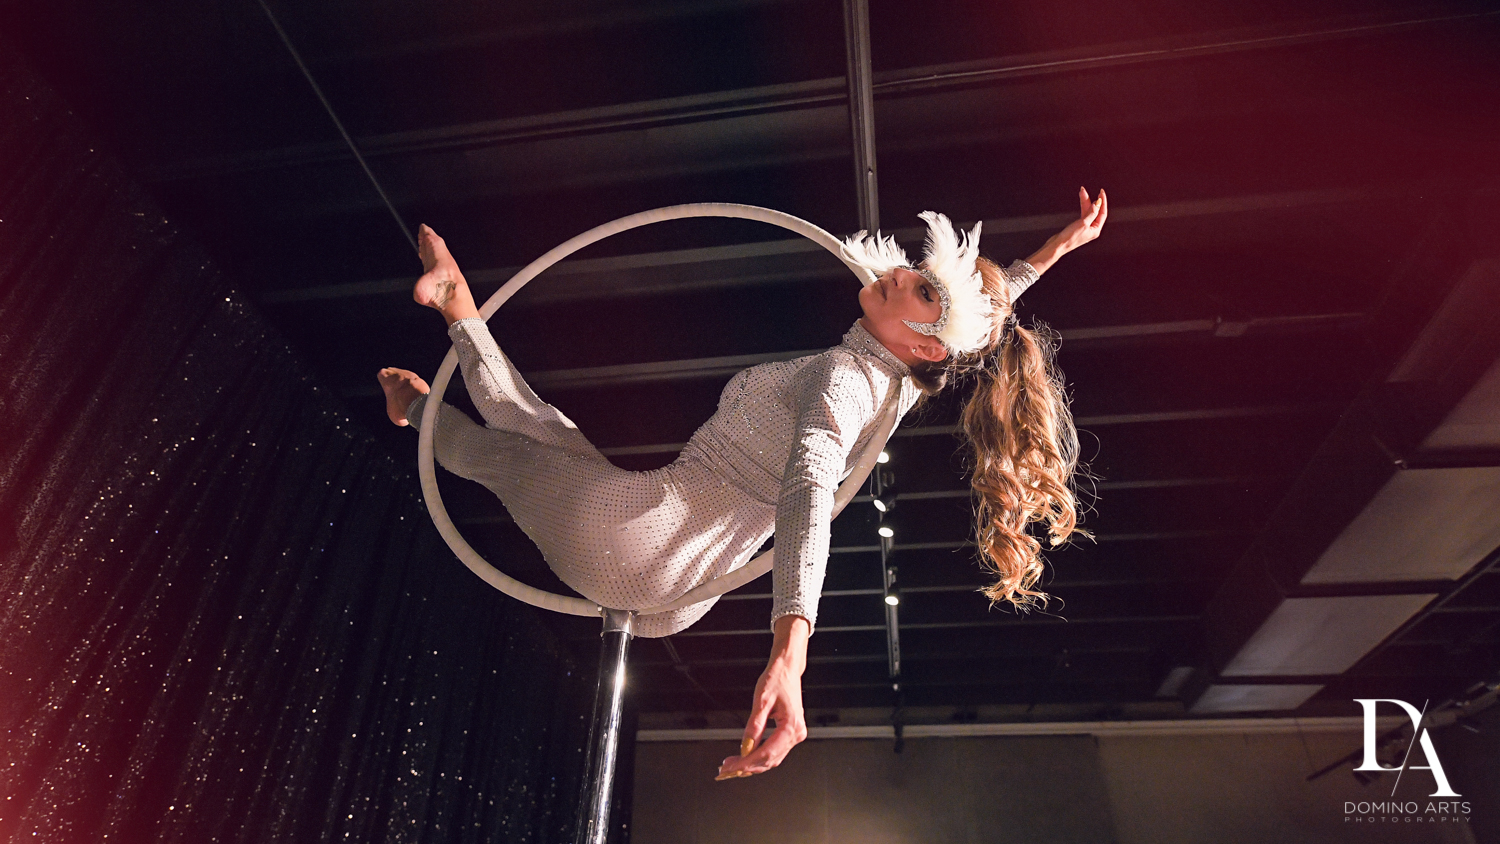 aerialists at Fashion Theme Bat Mitzvah at Gallery of Amazing Things by Domino Arts Photography